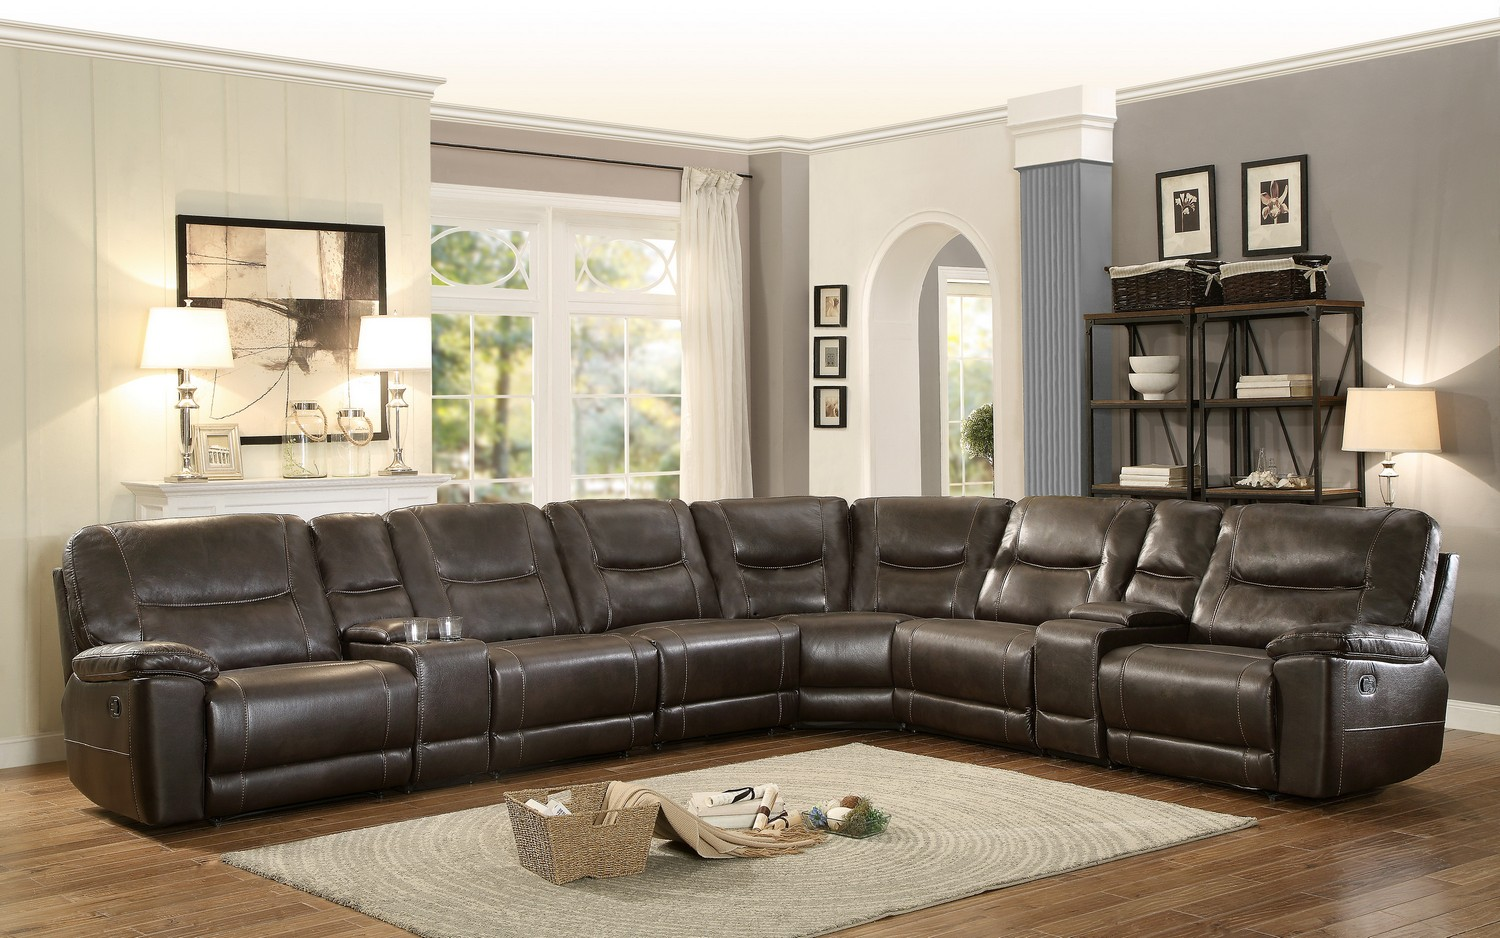 Homelegance Columbus Reclining Sectional Sofa Set E - Breathable Faux Leather - Dark Brown